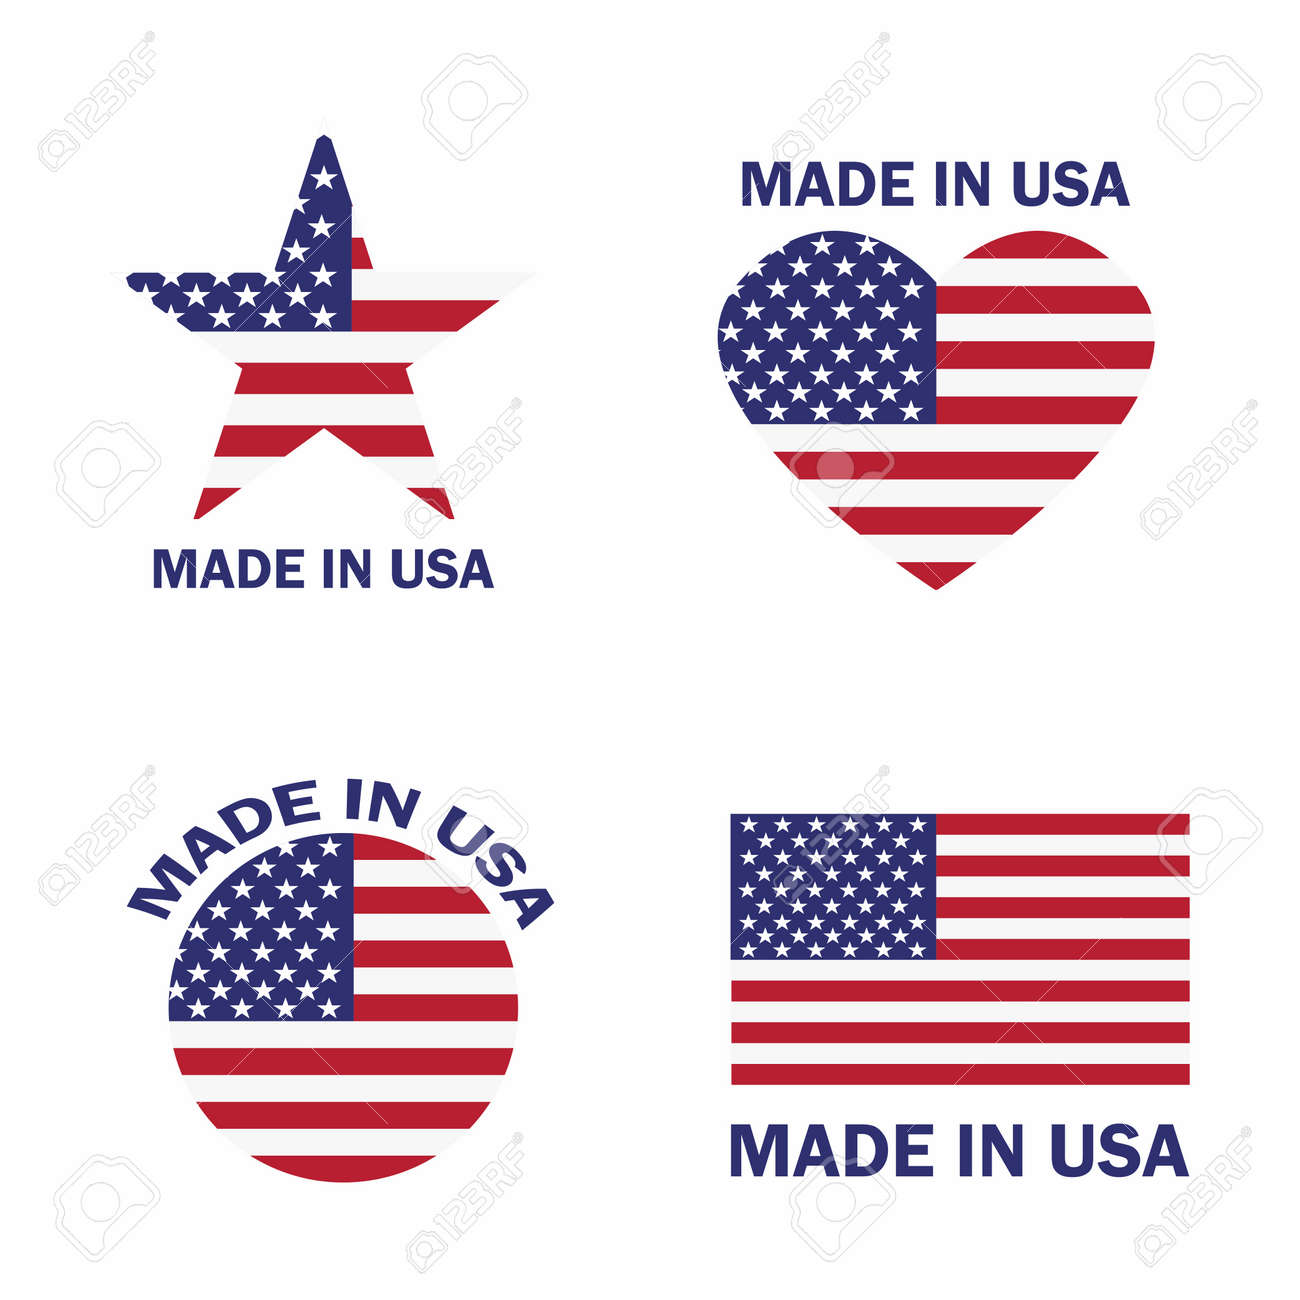 Set of Made in the USA label with American flag vector illustration - 99059181